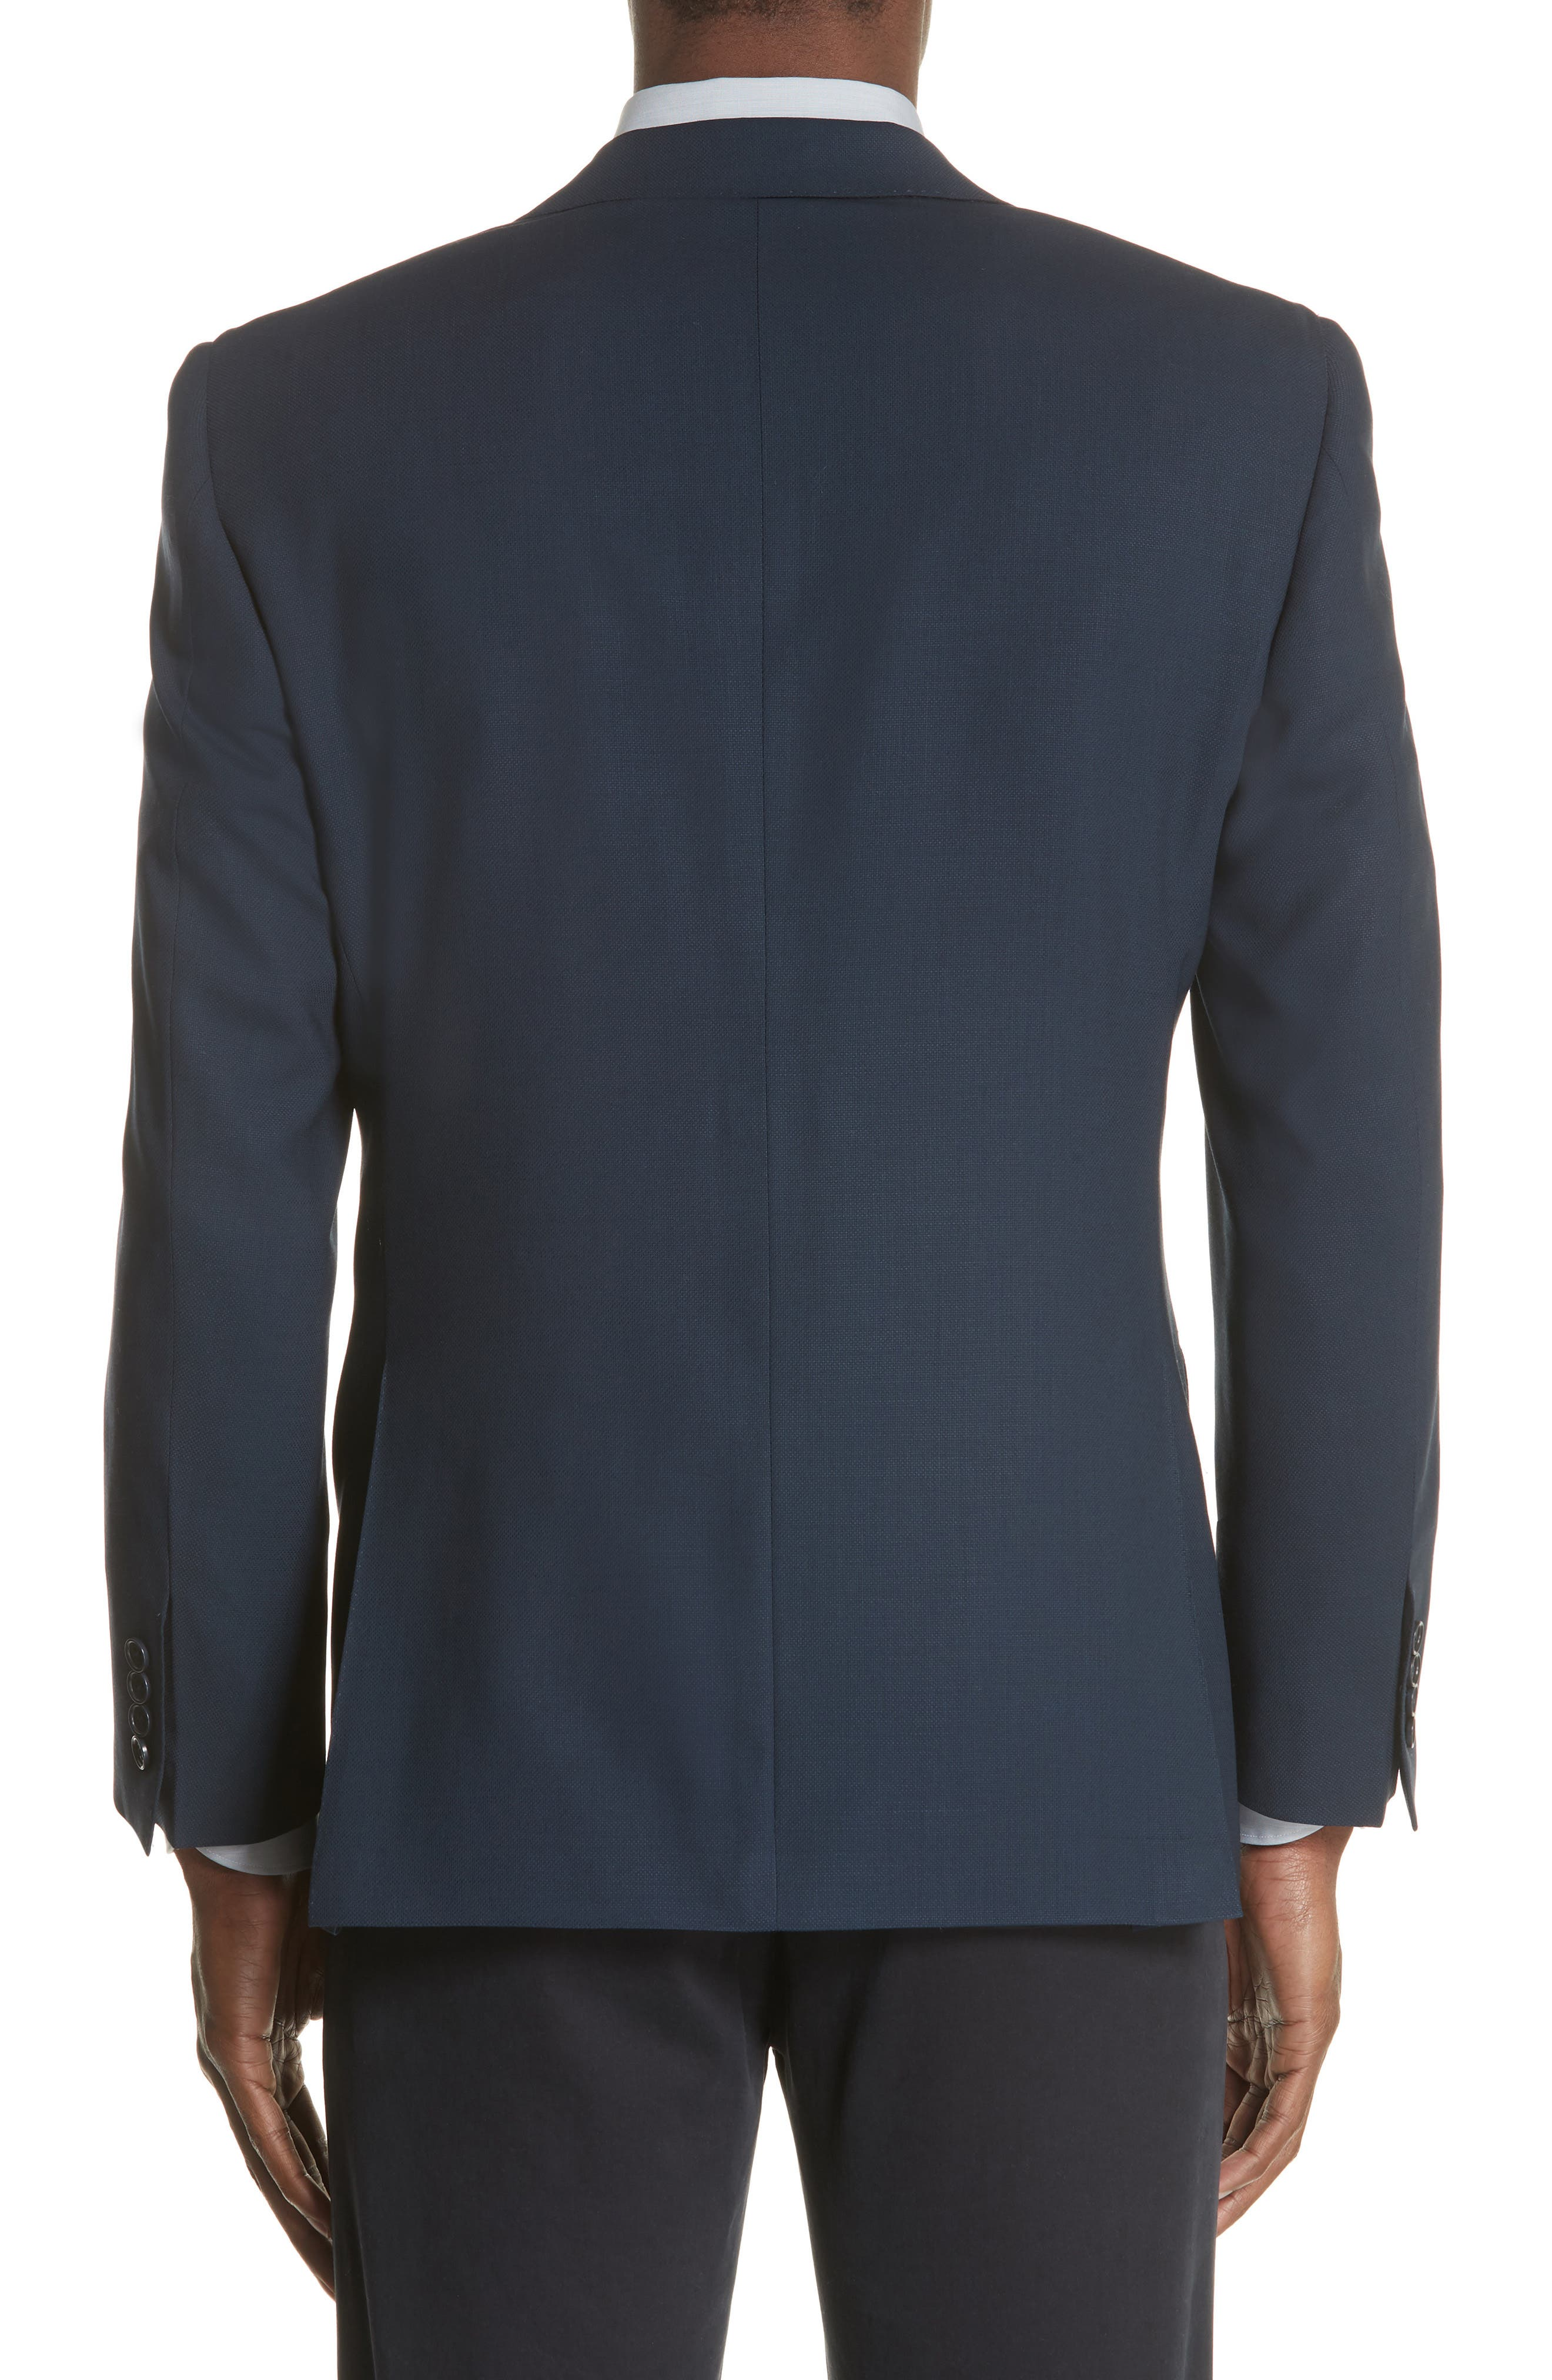 CANALI, Classic Fit Wool Blazer, Alternate thumbnail 2, color, NAVY